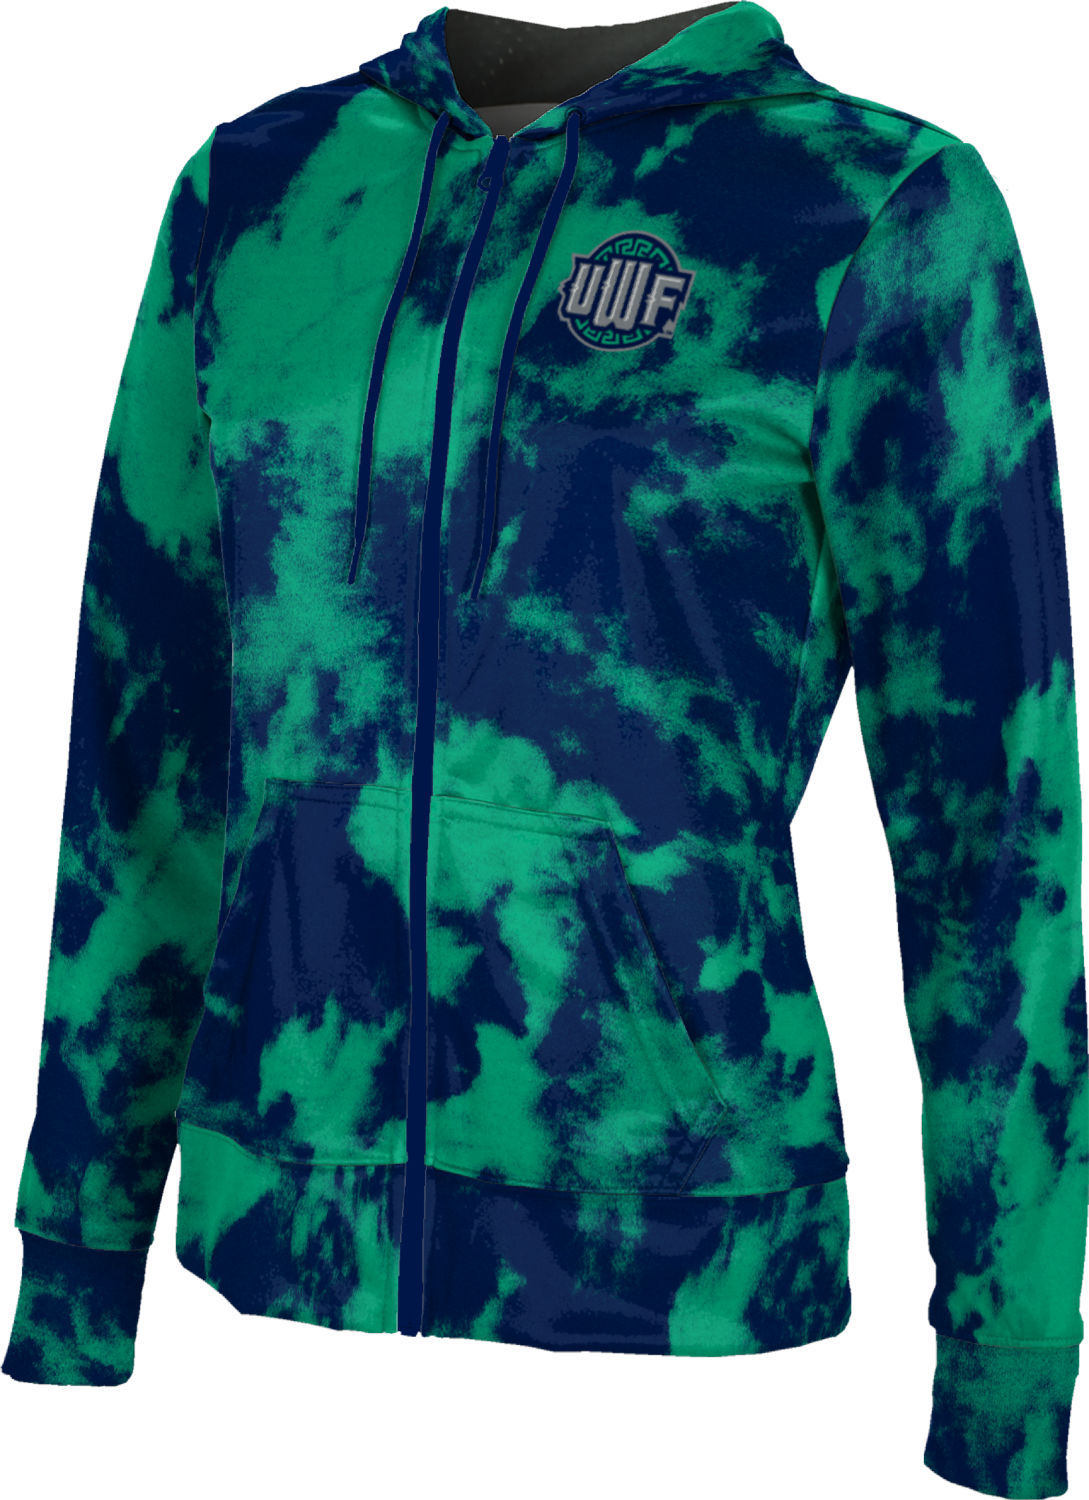 ProSphere University of West Florida Mens Fullzip Hoodie Grunge